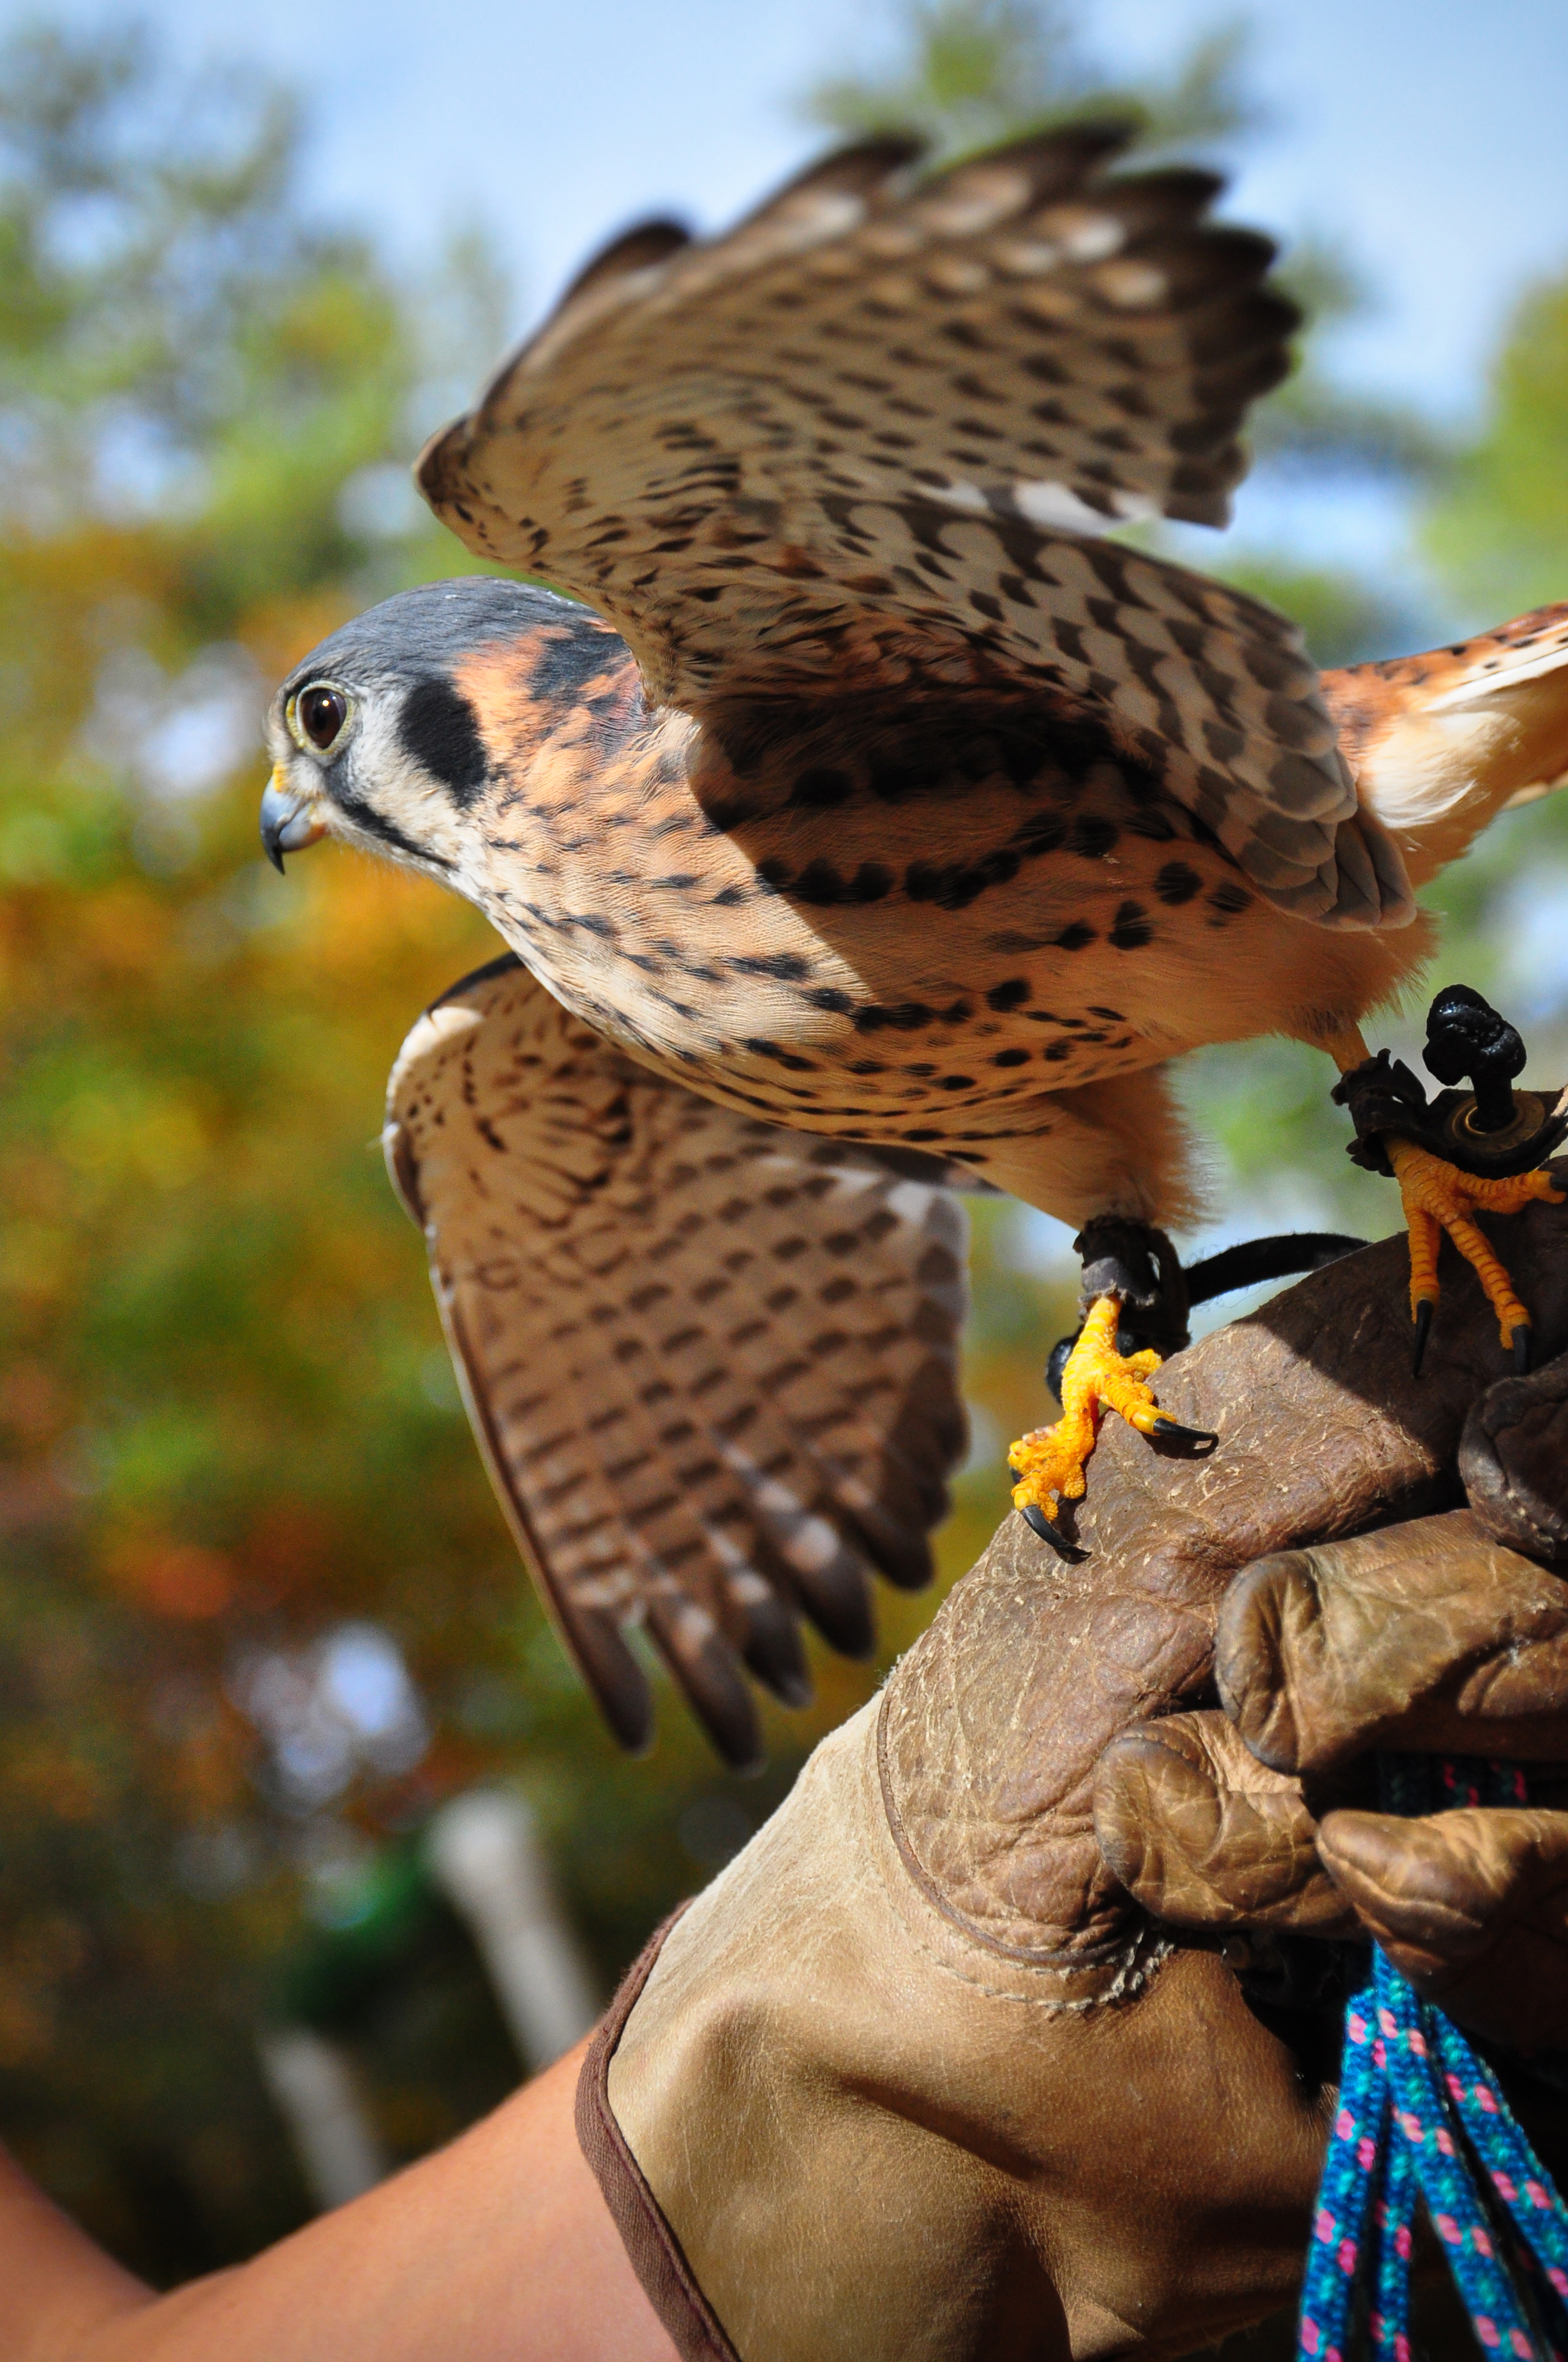 An American Kestrel from the Rock Eagle 4-H Center's collection